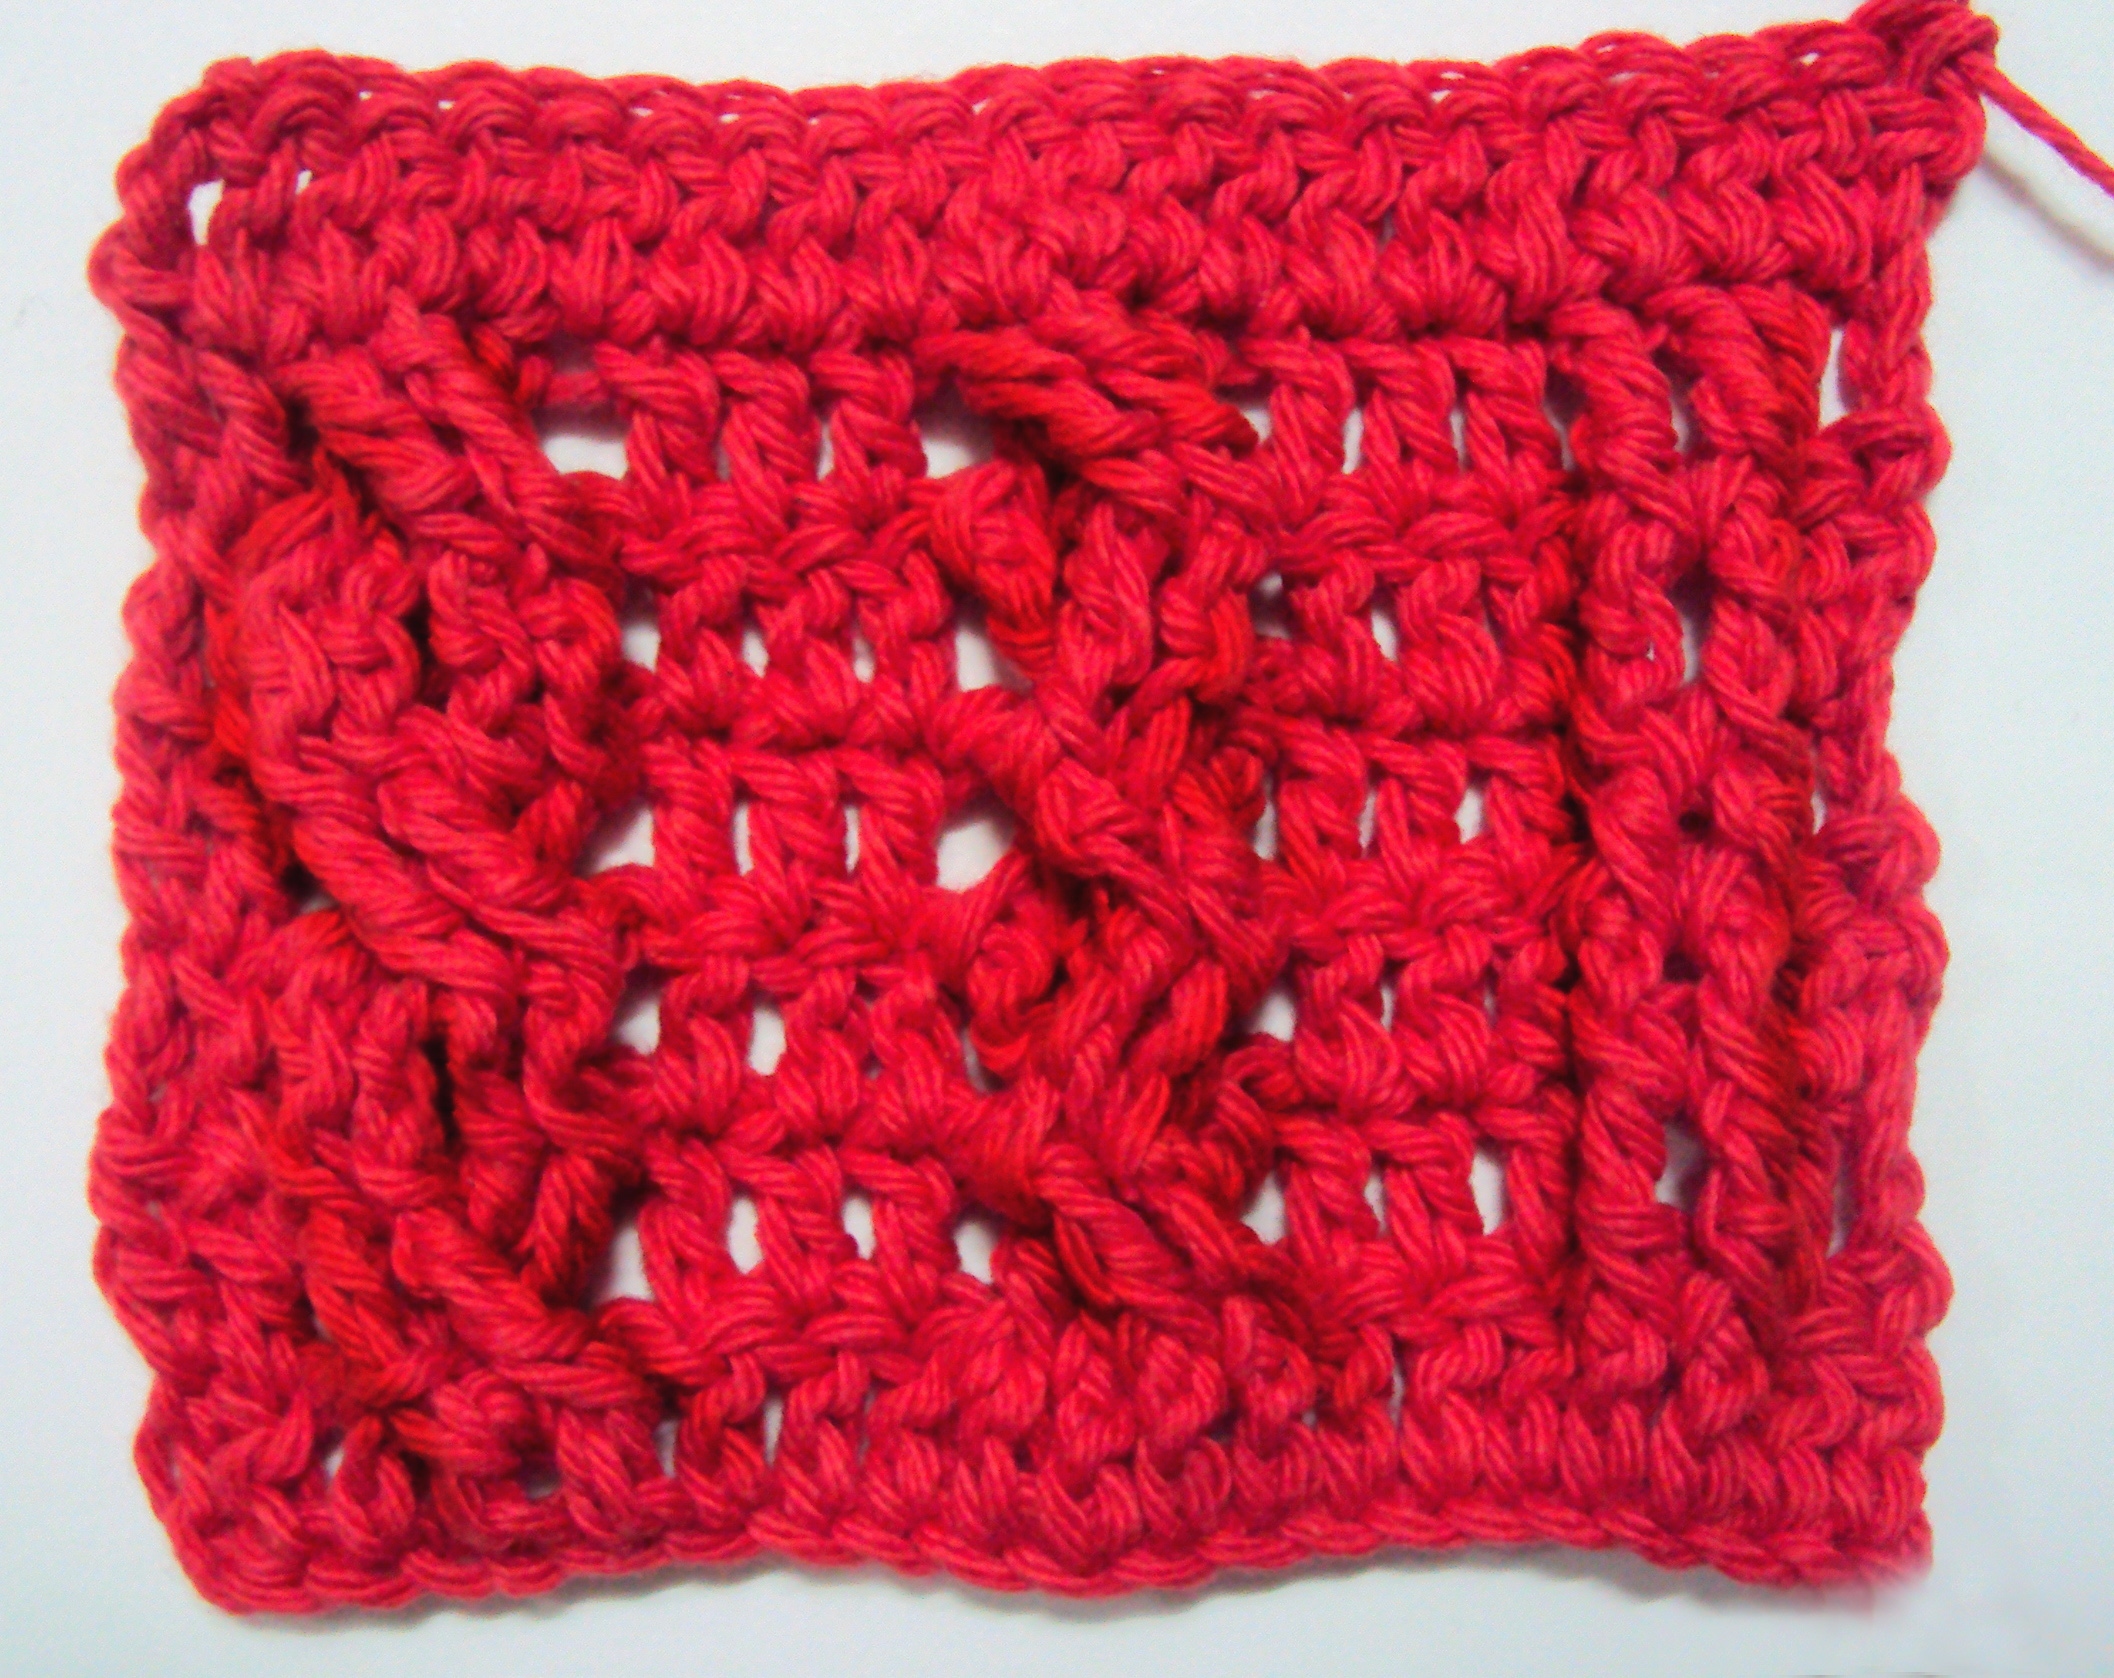 Crochet Patterns How To : ... How to Crochet: Cable Stitches - Crochet Patterns, Tutorials and News